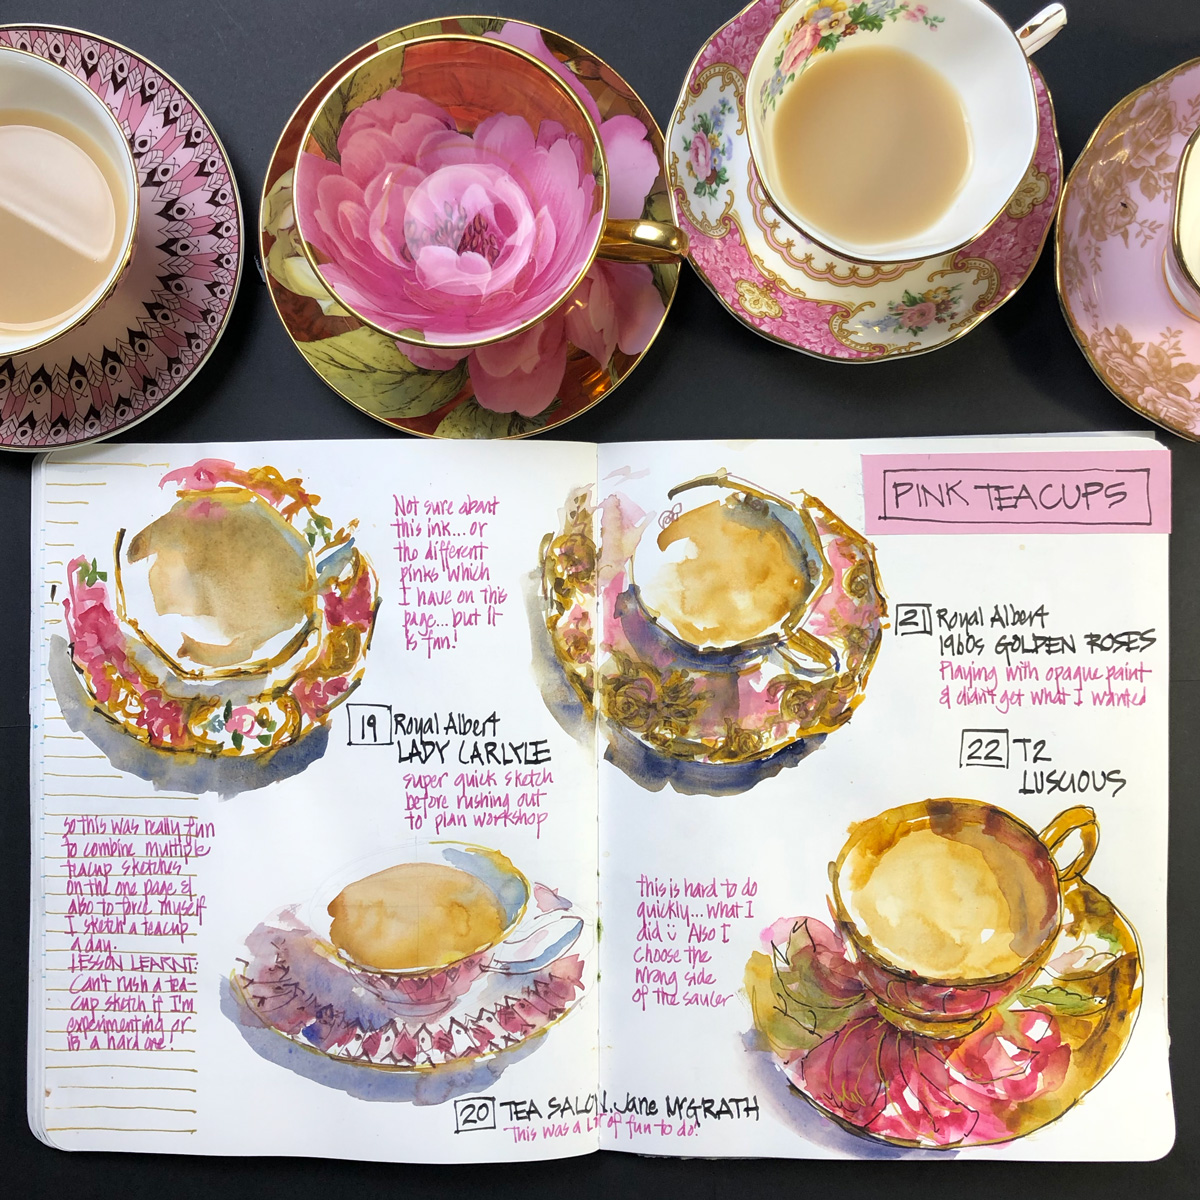 Pink teacups Liz Steel